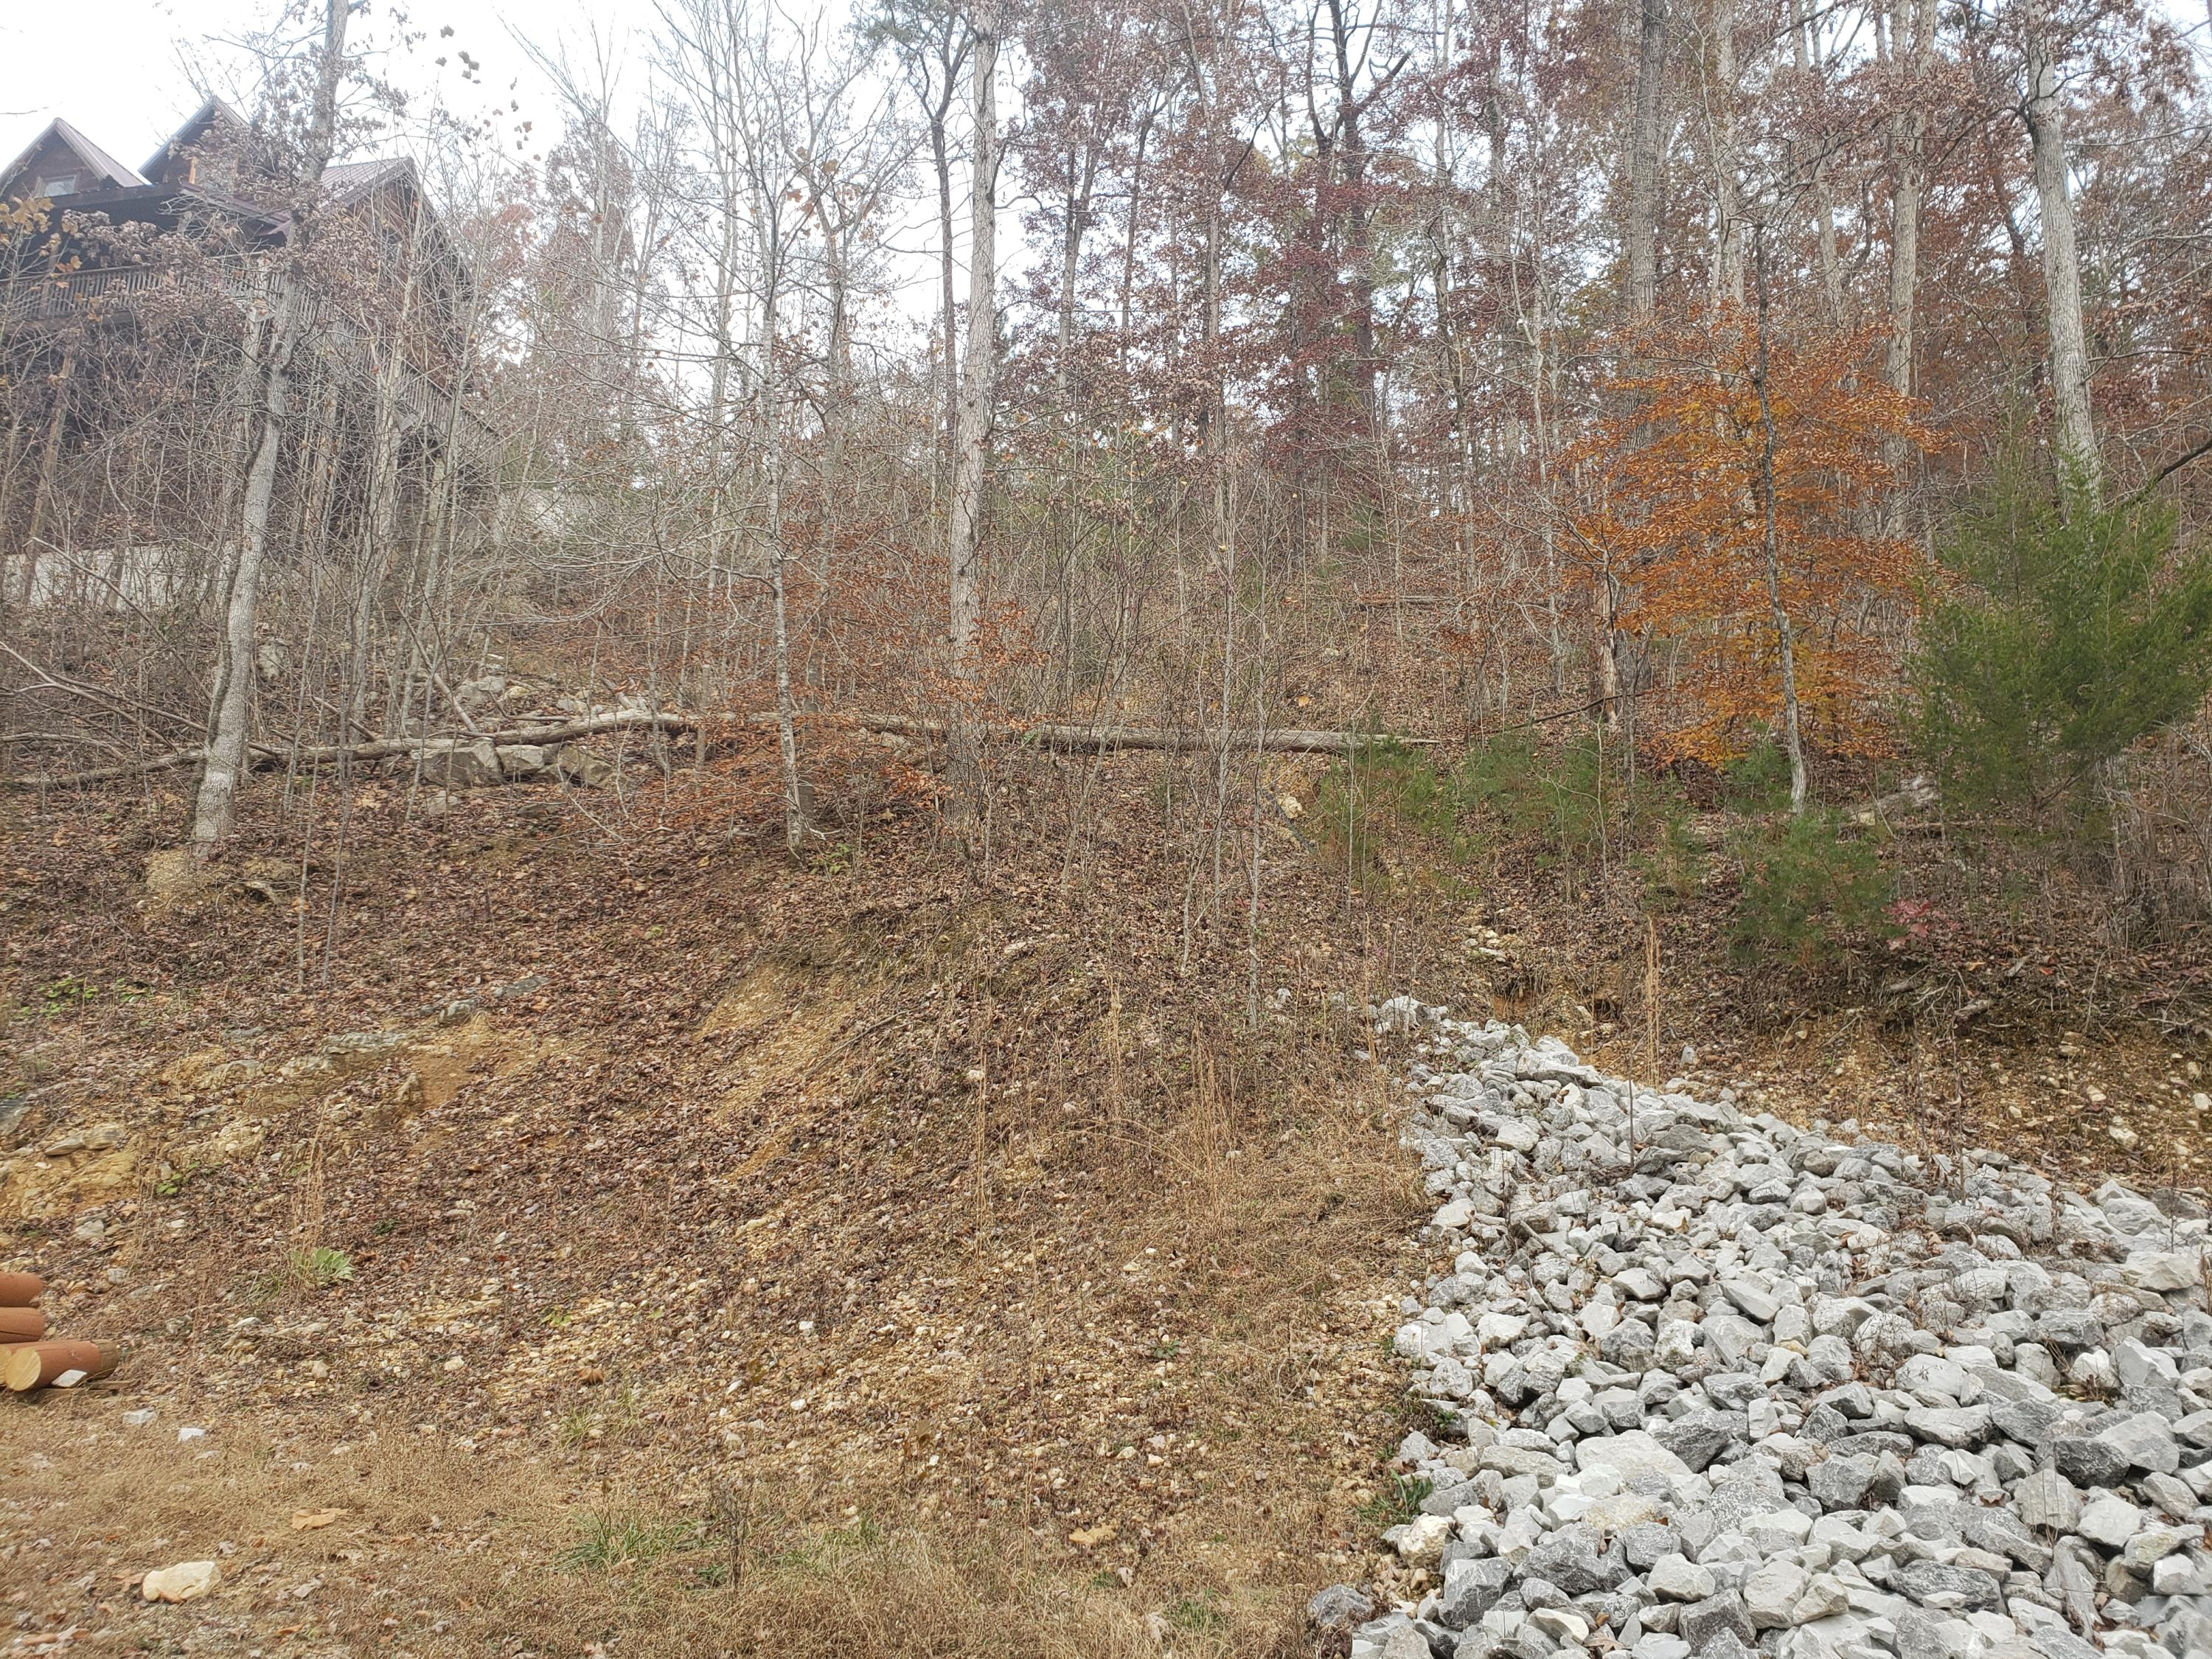 Lot 10 Poplar Creek Court, Caryville, Tennessee 37714, ,Lots & Acreage,For Sale,Poplar Creek,1101234